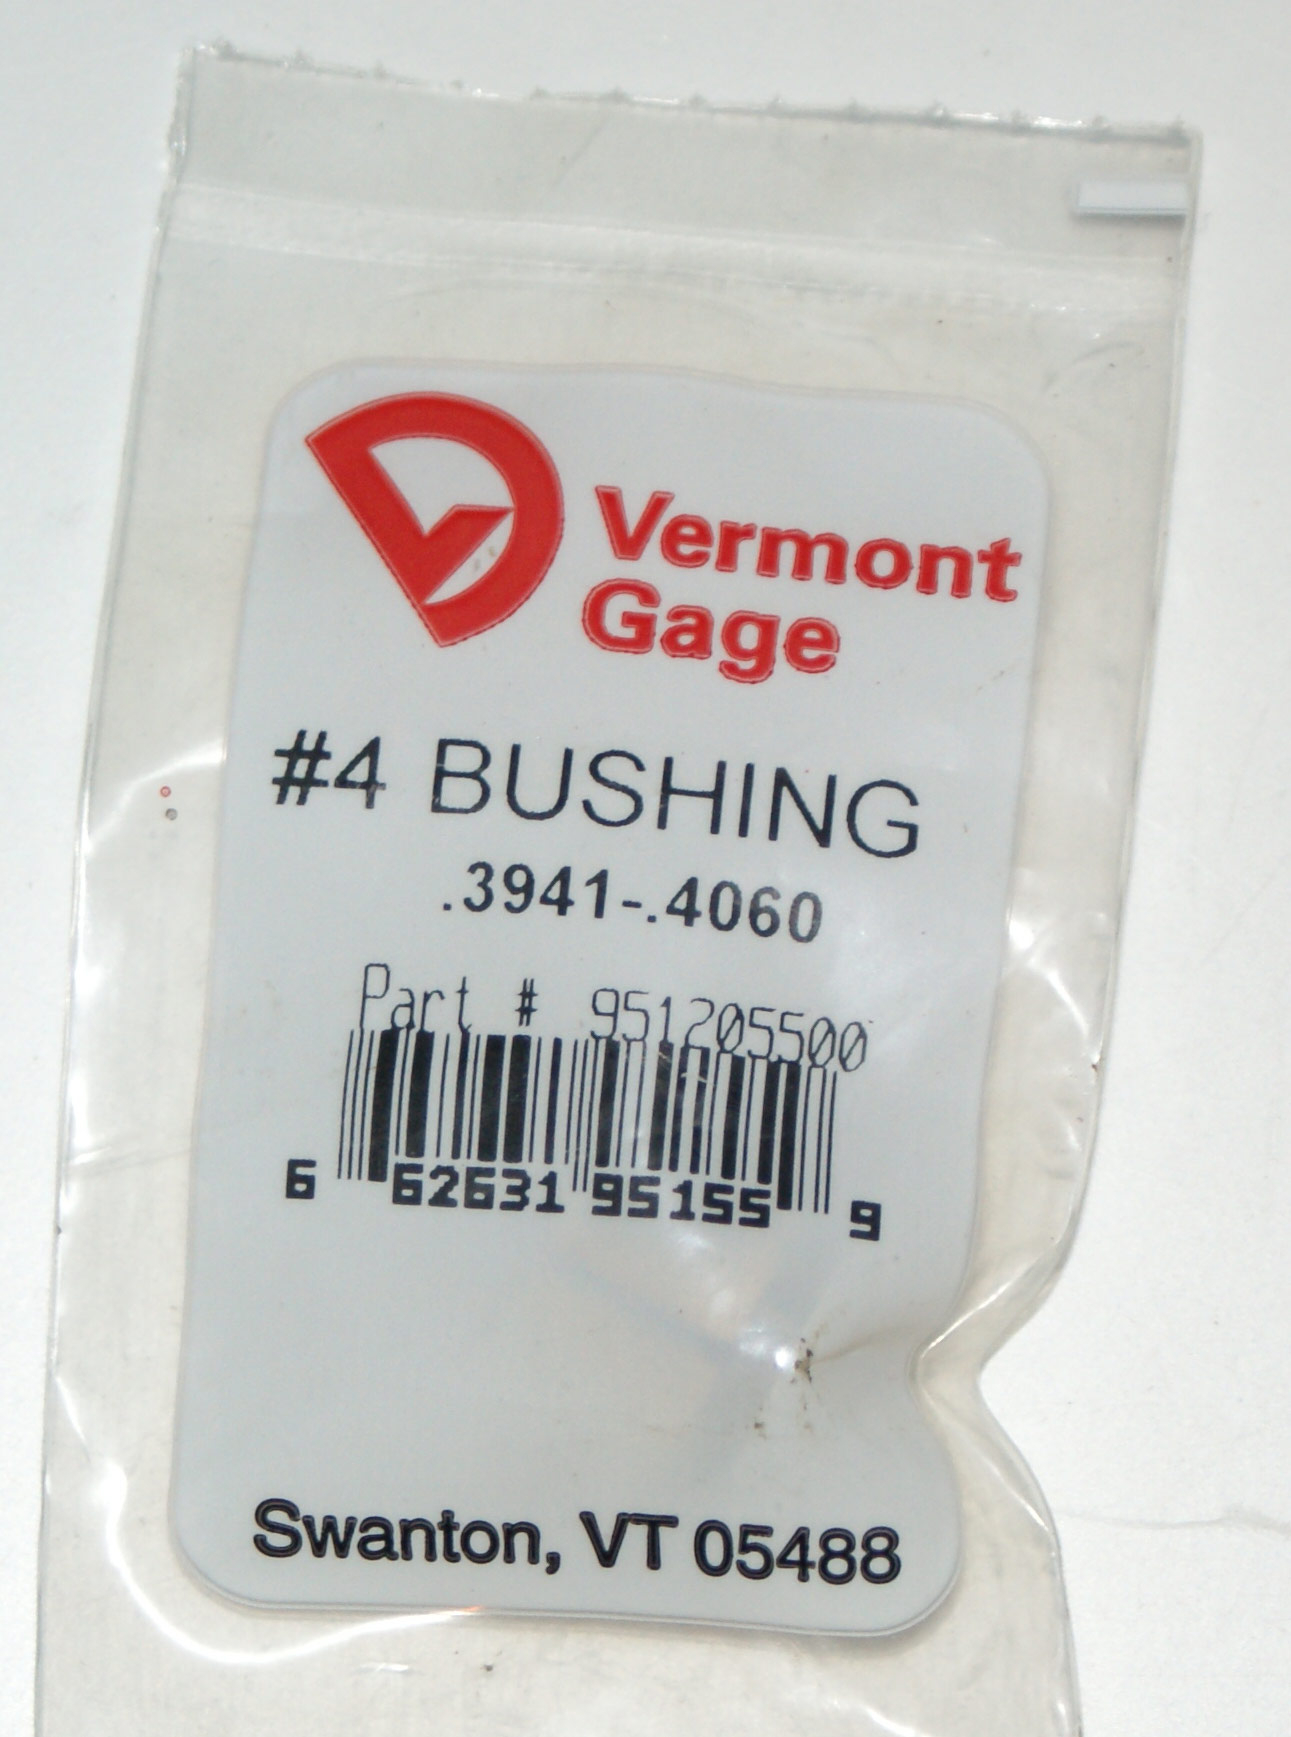 "Vermont Gage .3941 - .4060"" #4 Bushing / Collet Pin"